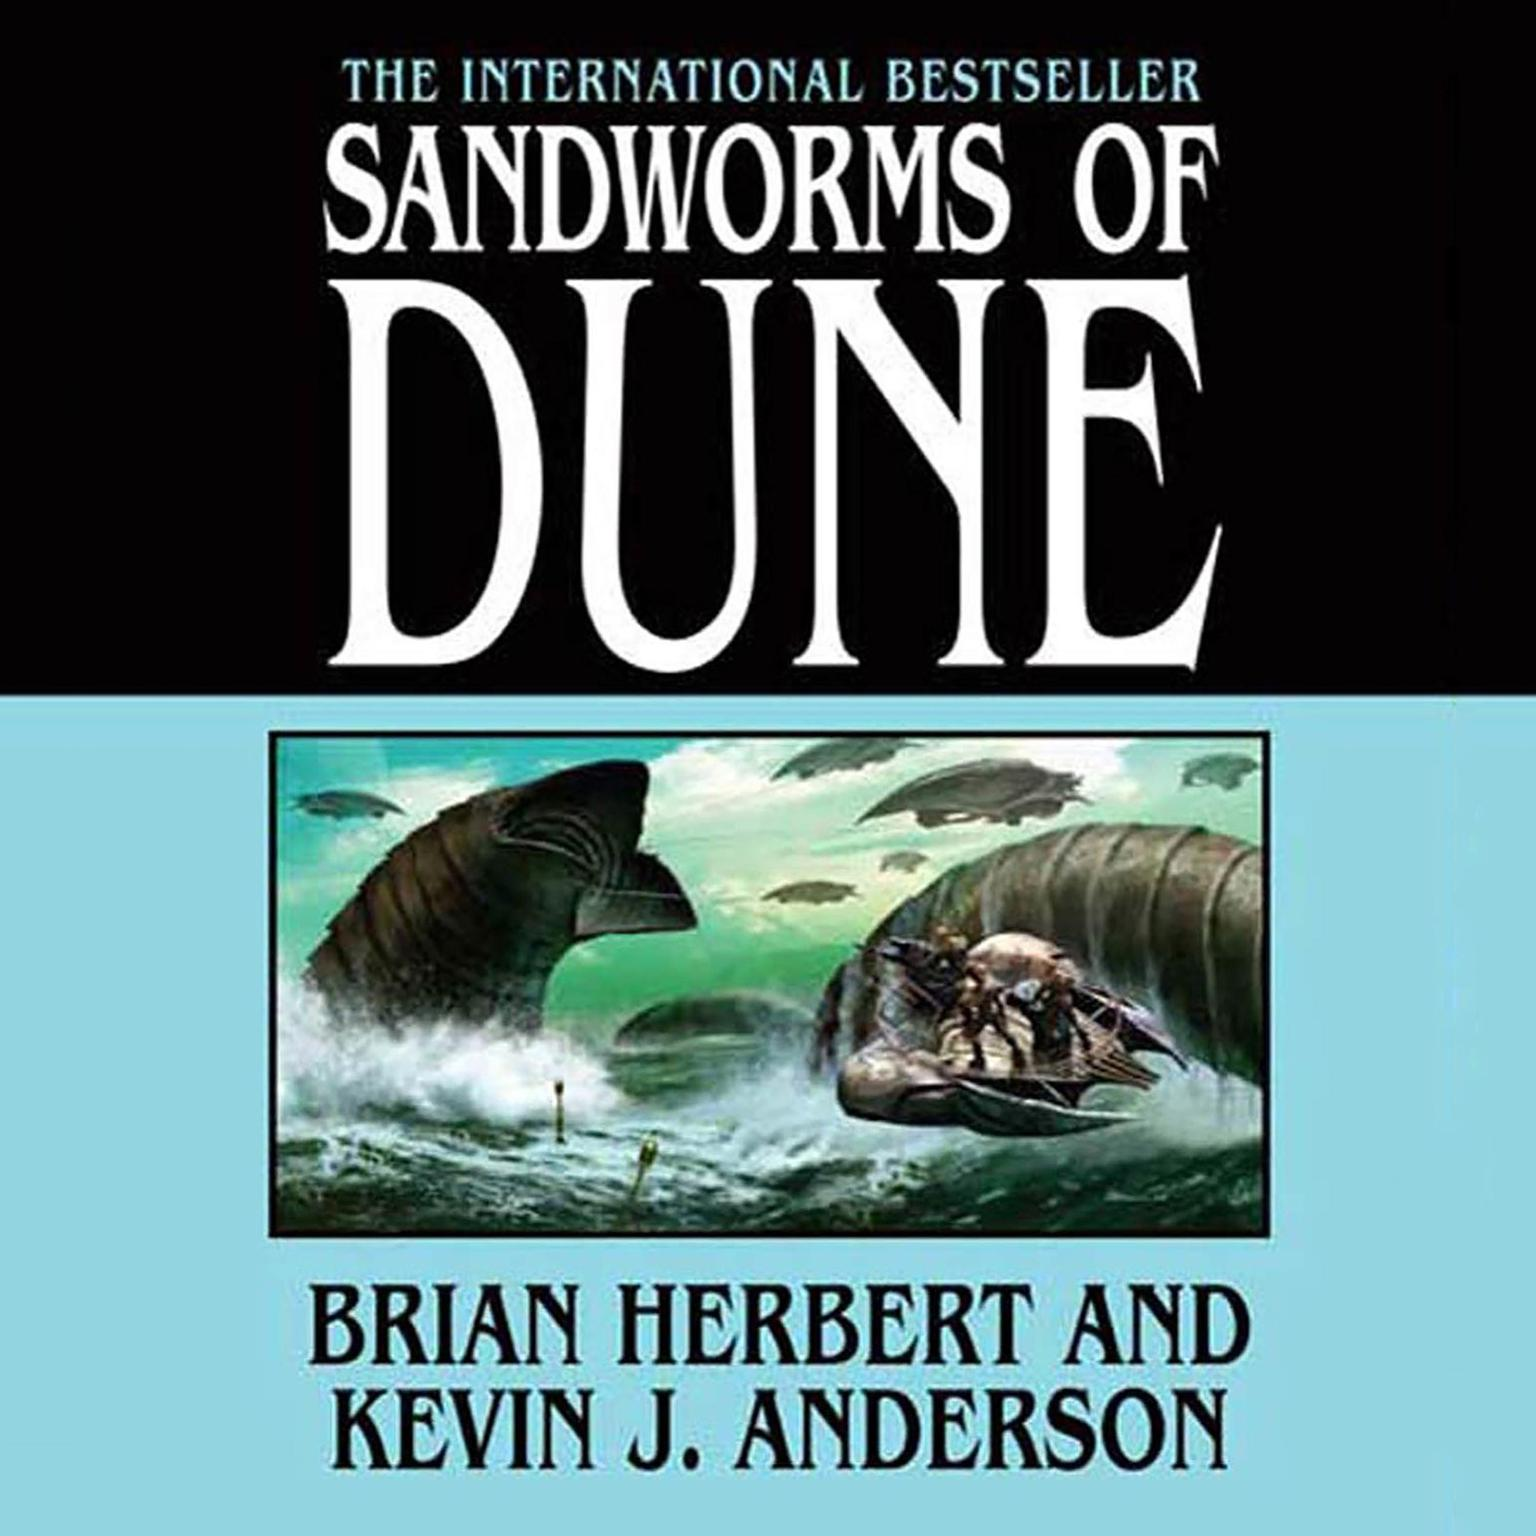 Printable Sandworms of Dune Audiobook Cover Art